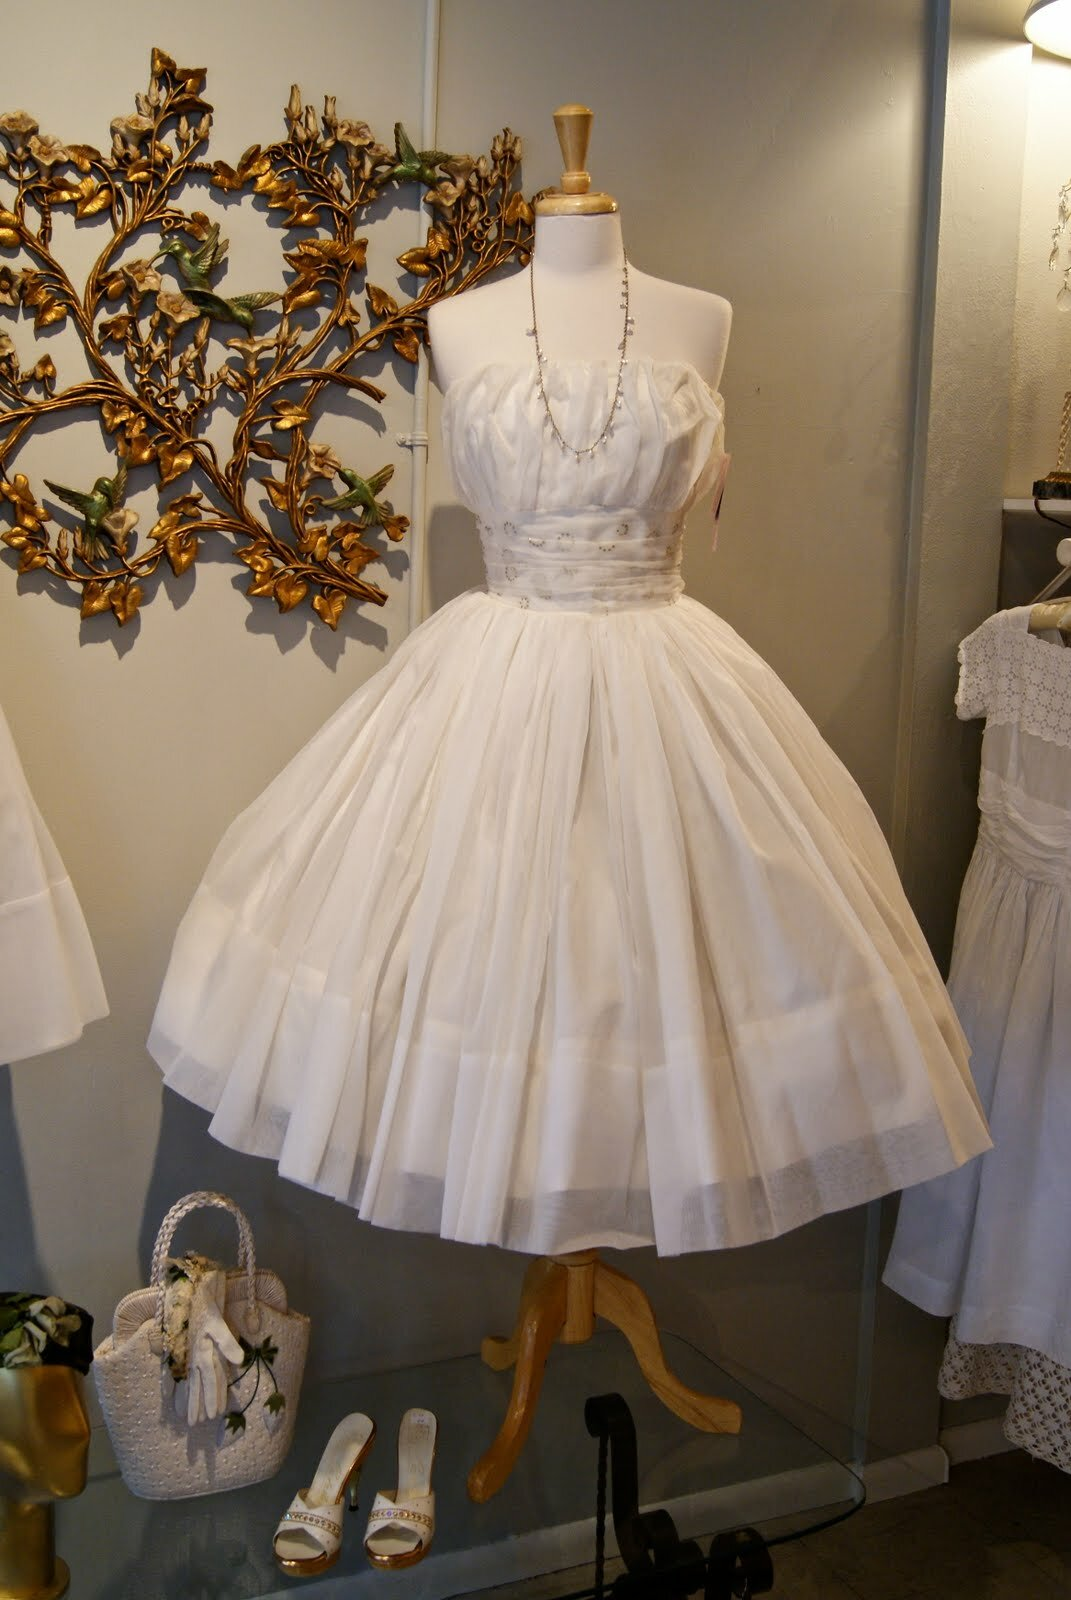 Vintage Style Wedding Dresses Portland : Vintage wedding dresses portland oregon pictures ideas